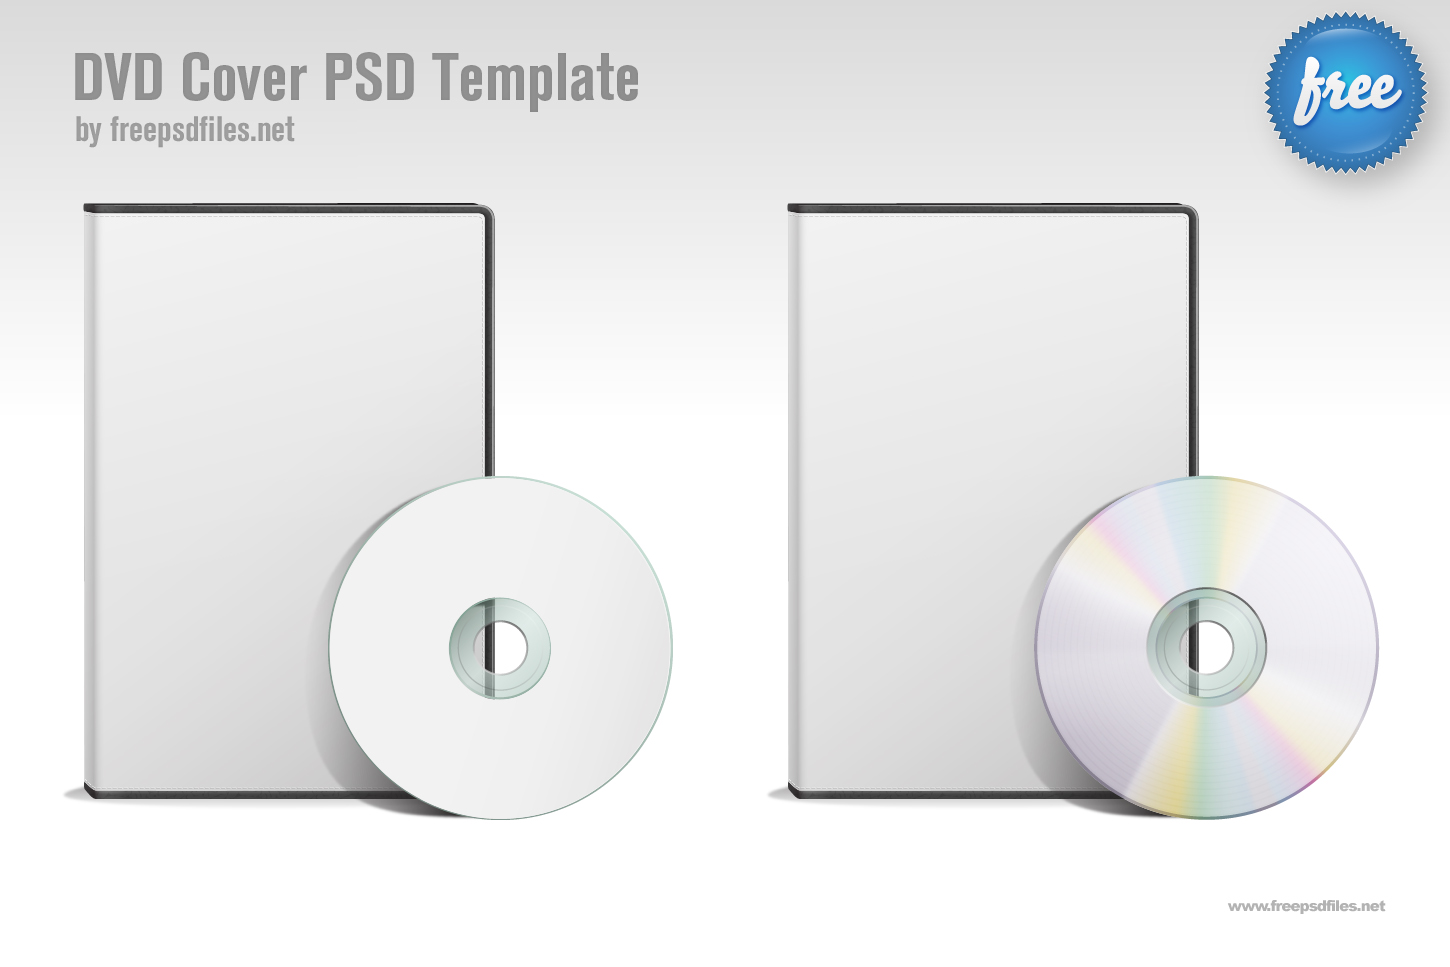 dvd case mock up free psd template free templates